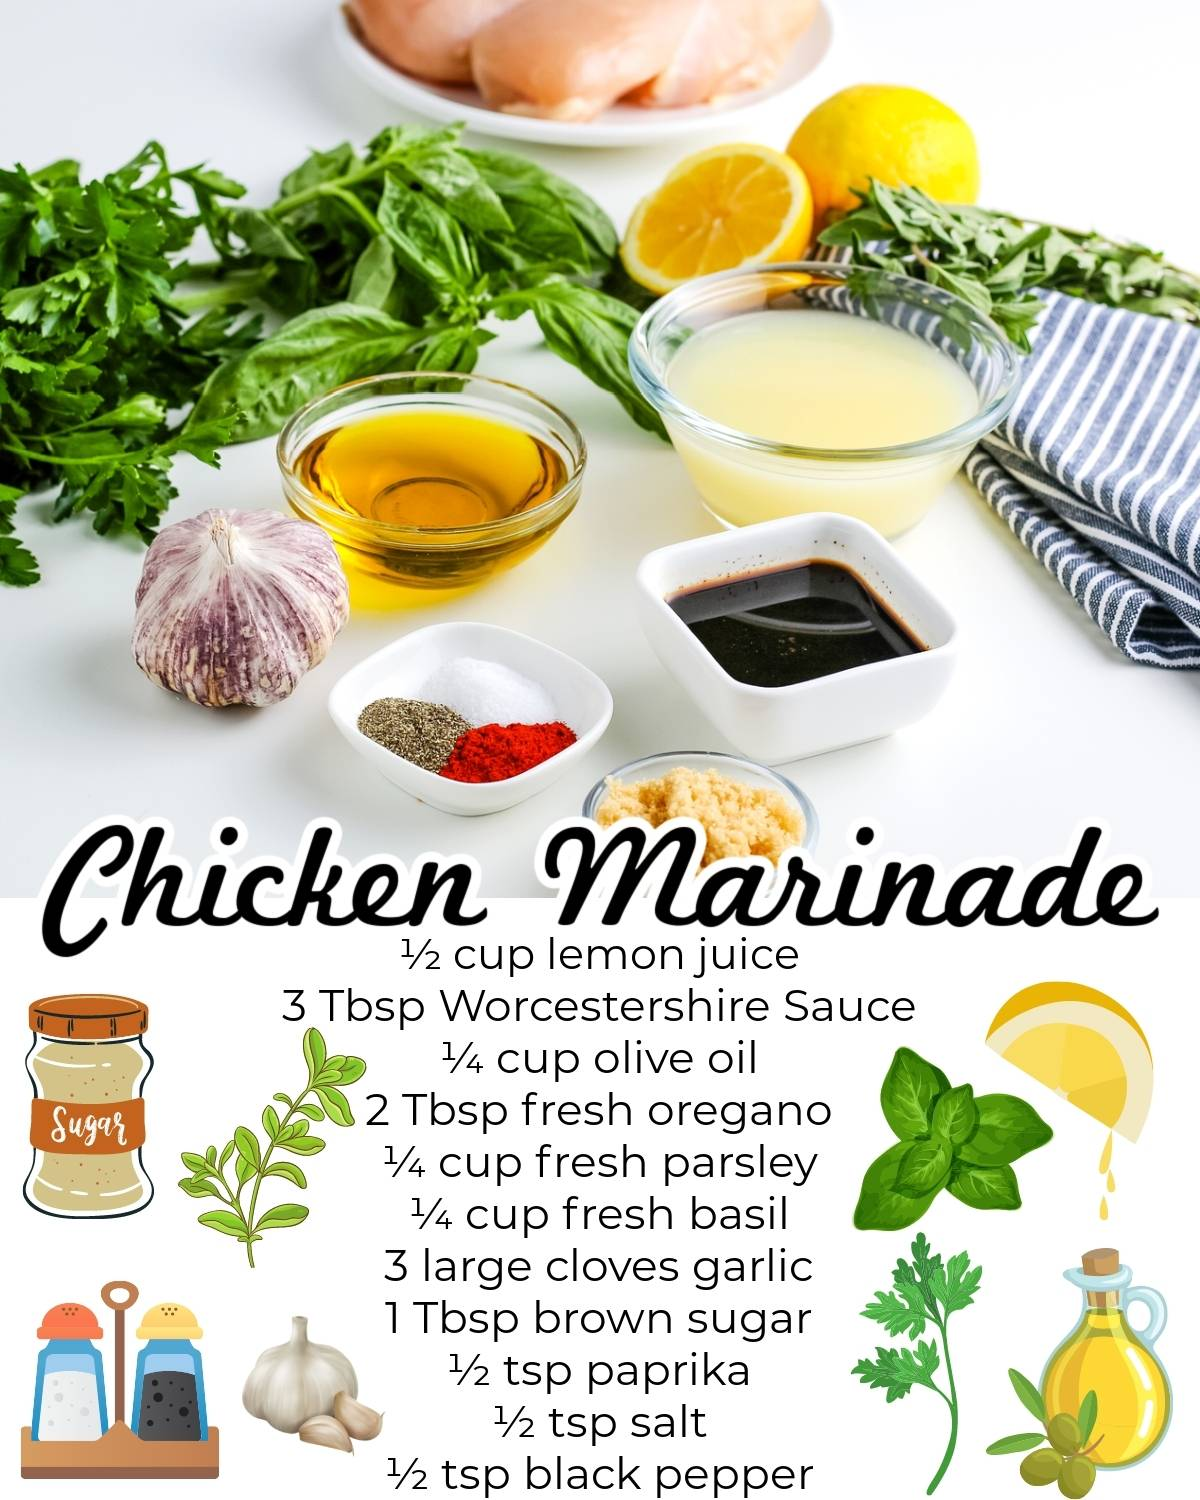 All of the ingredients needed to make this easy chicken marinade recipe.